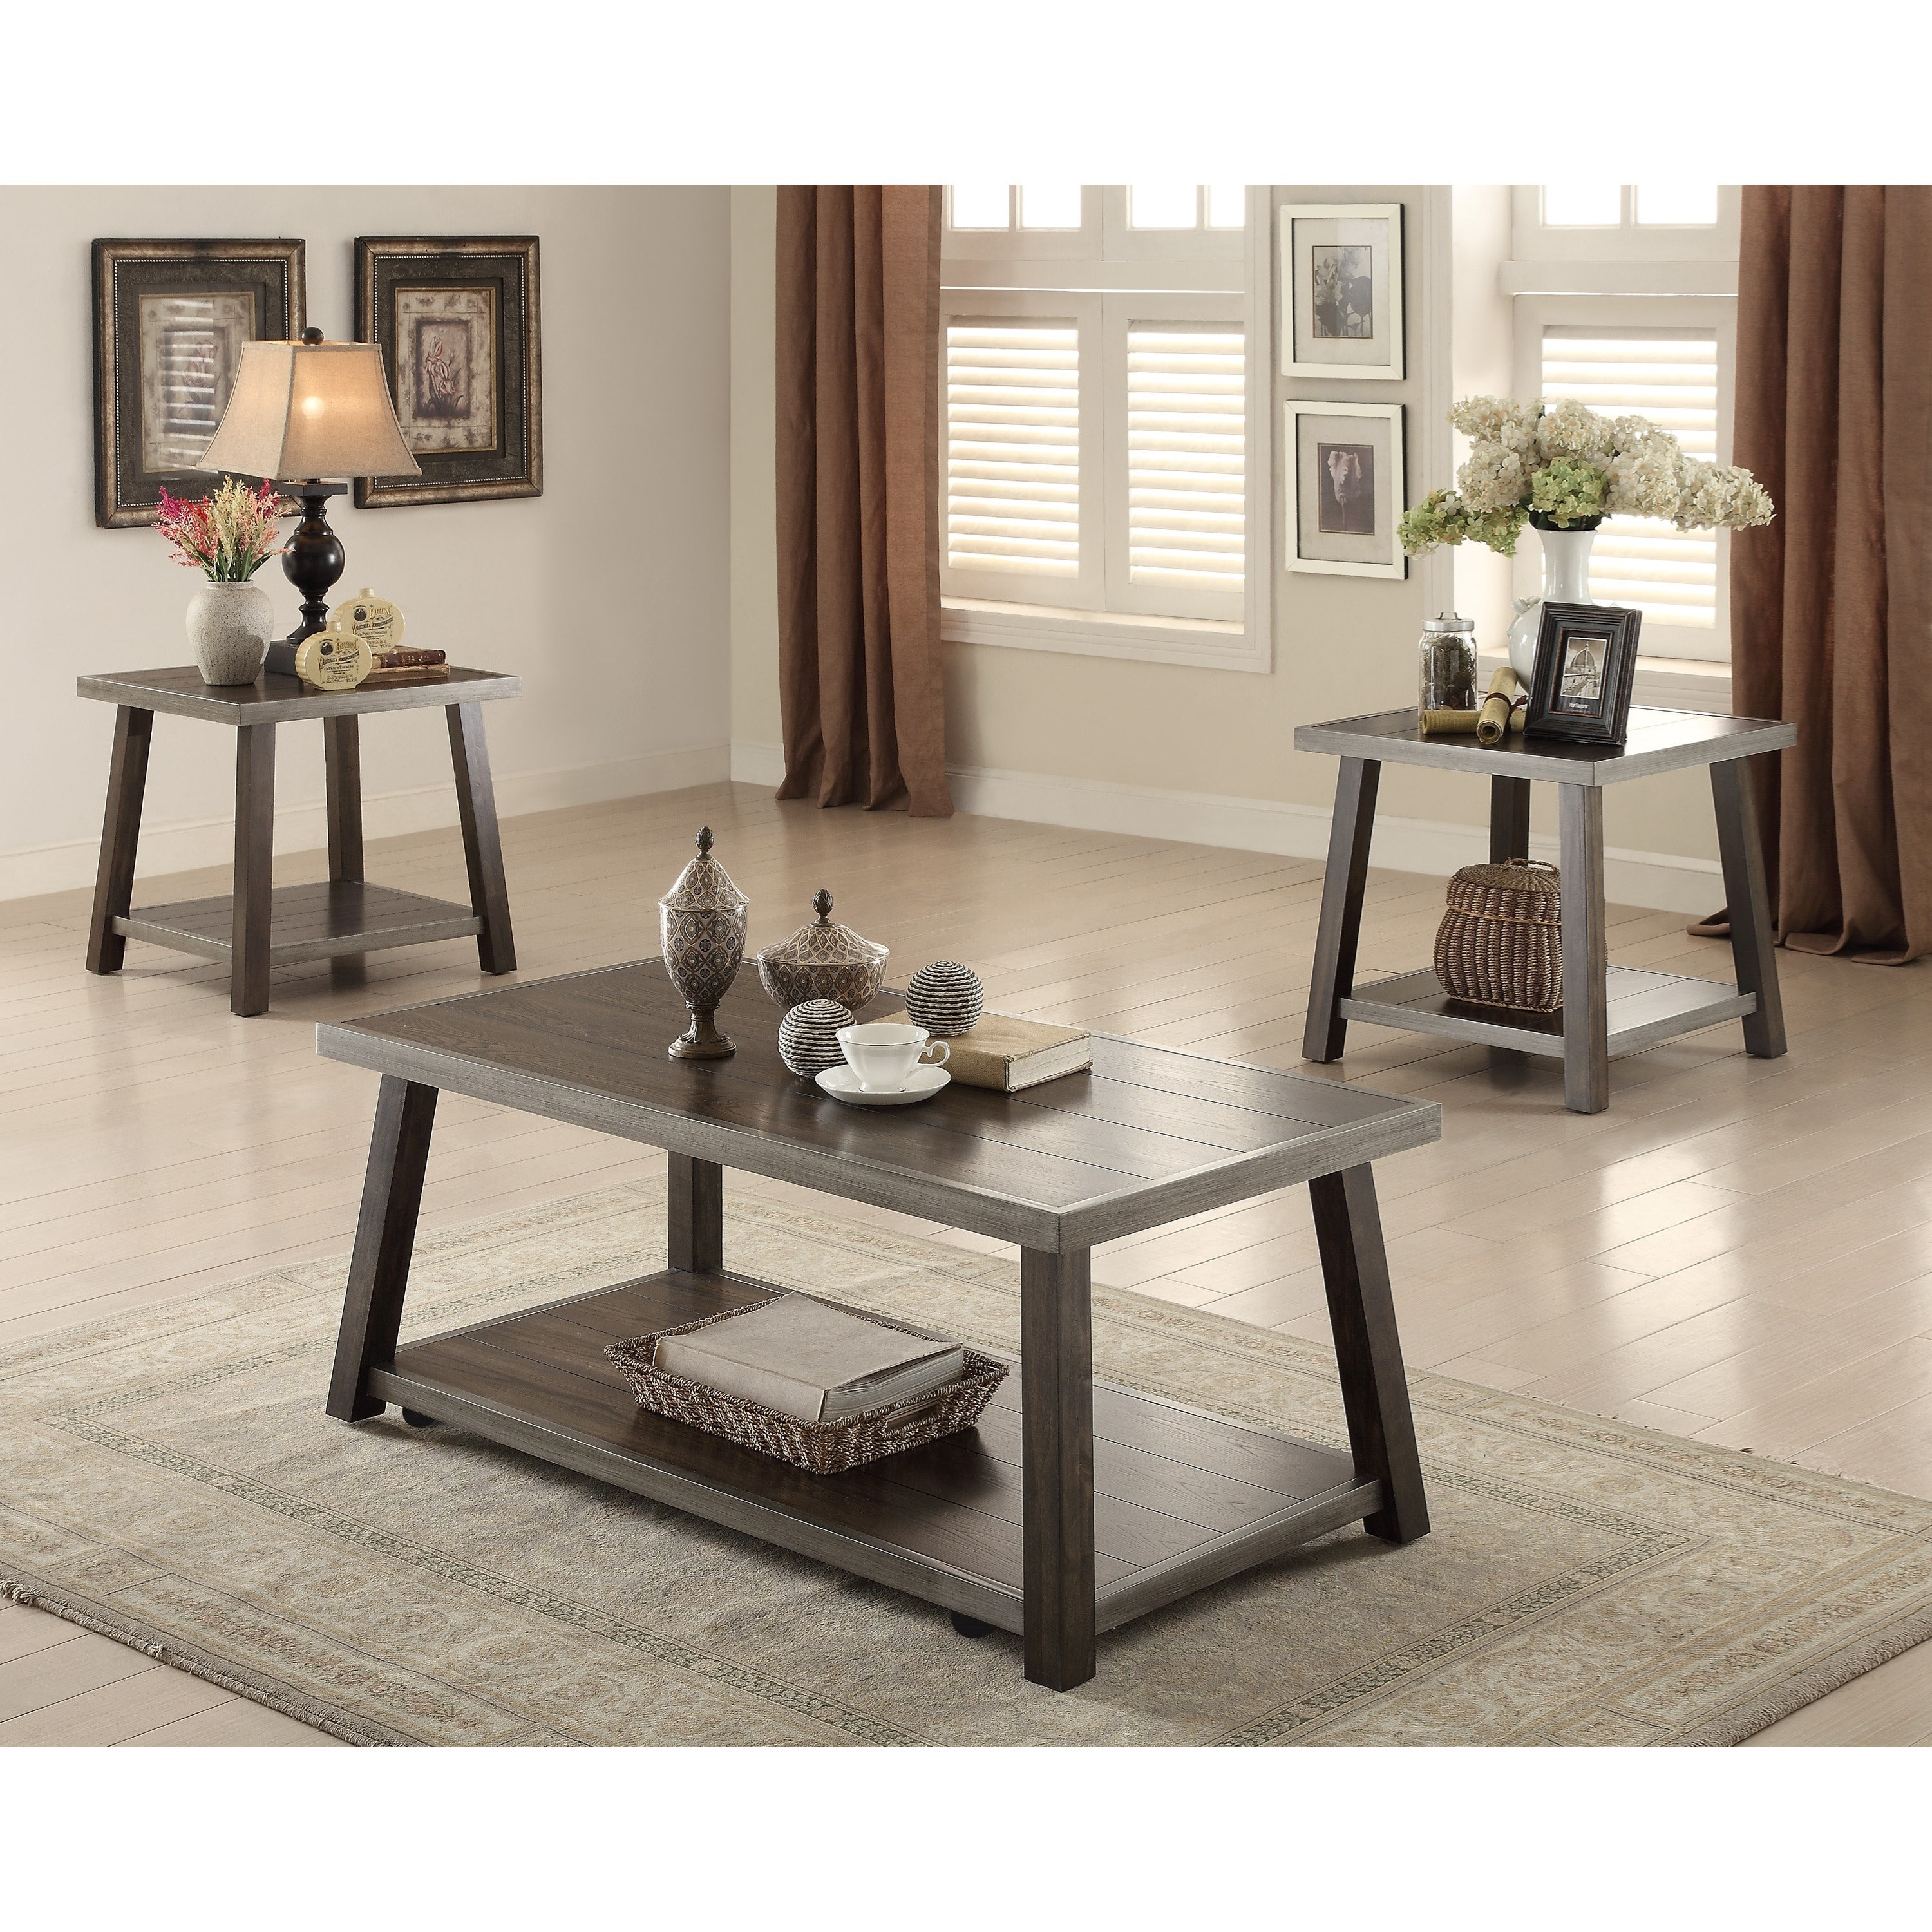 Etonnant Crown Mark Miles Occasional Occasional Table Group With Casters